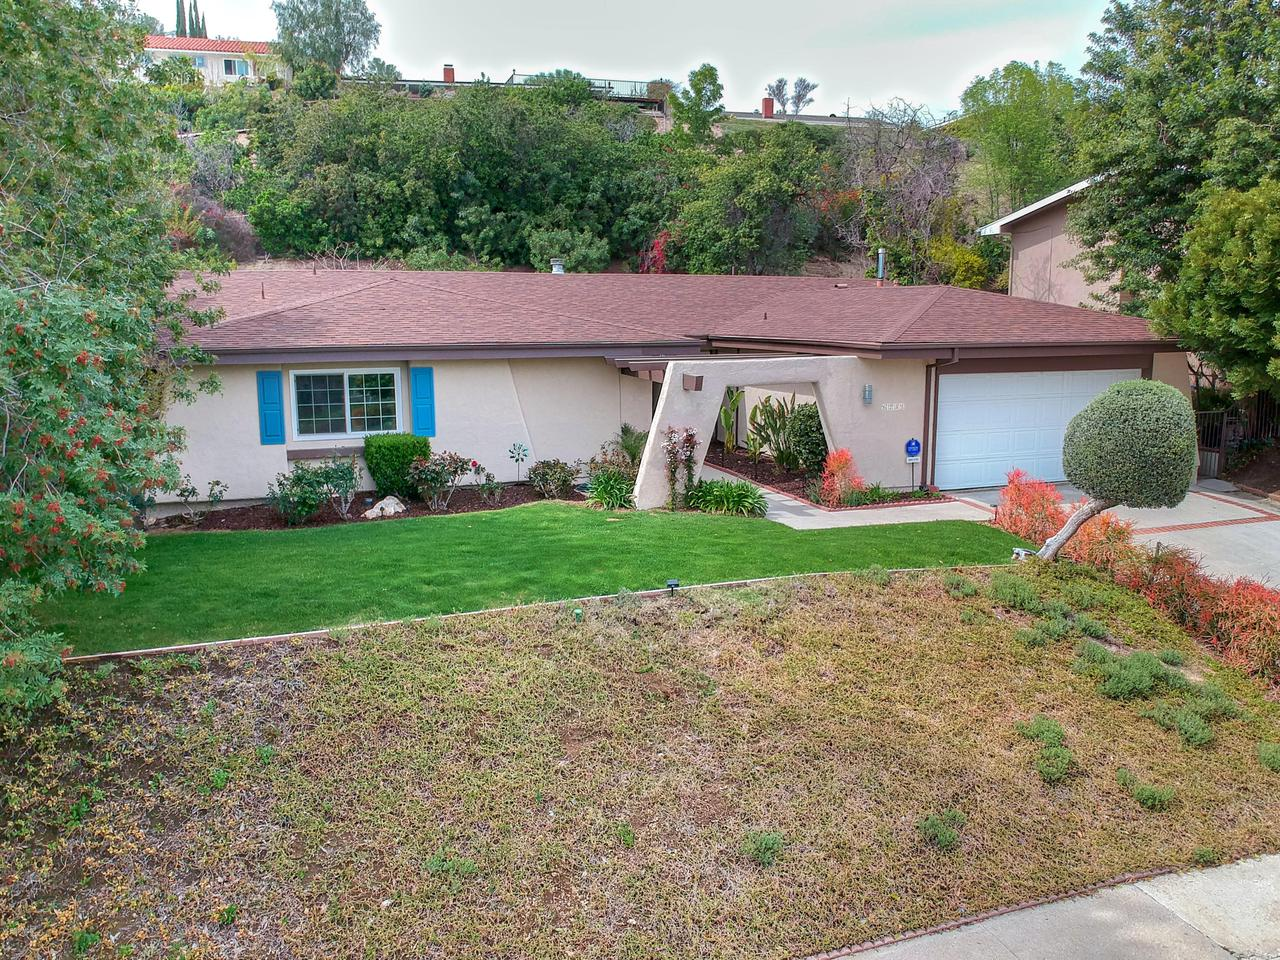 6231 PAT, West Hills, CA 91307 - Front Aerial